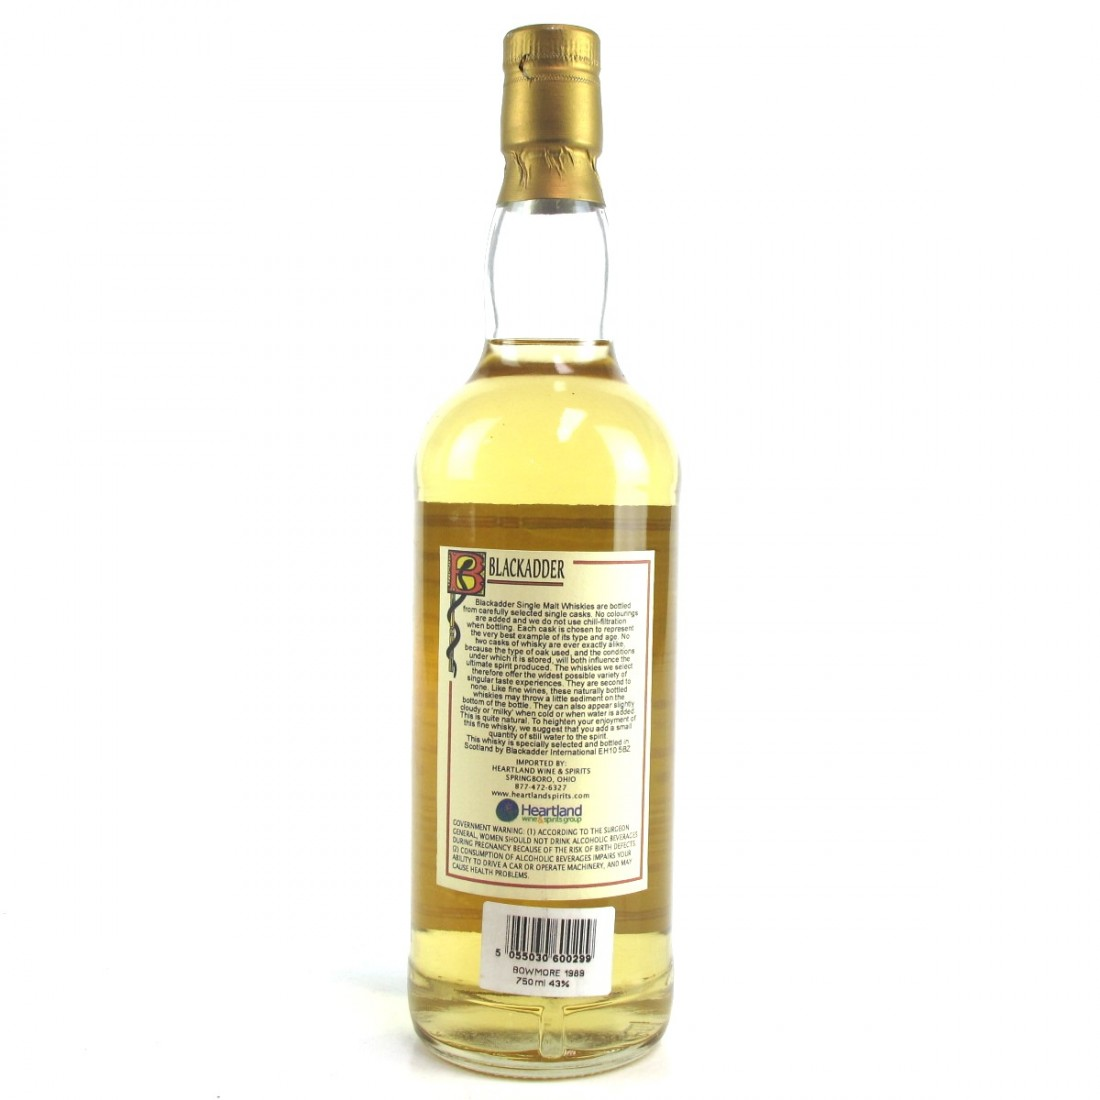 Bowmore 1989 Blackadder 10 Year Old 75cl / US Import